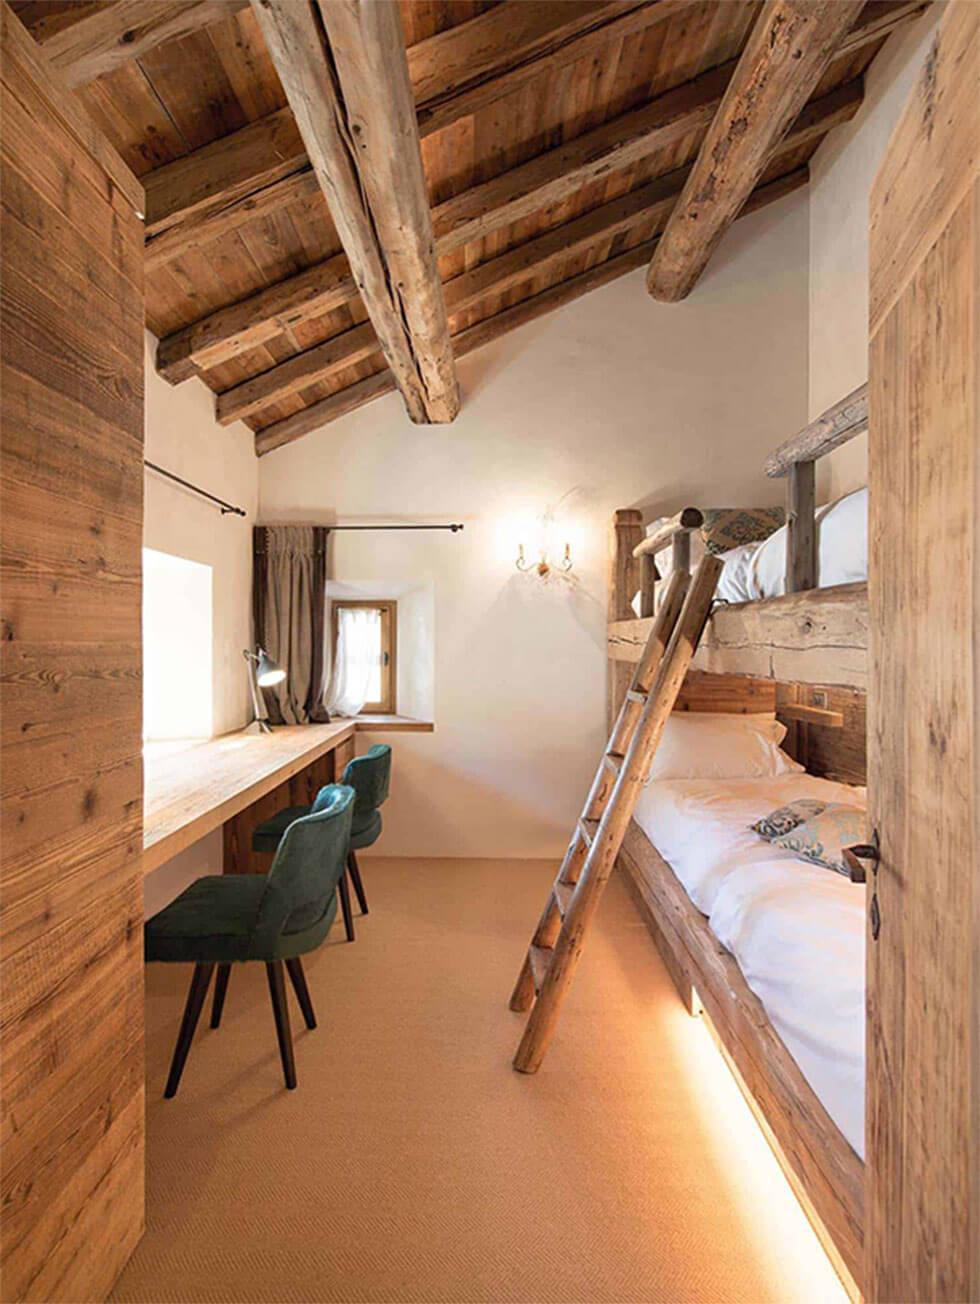 Classic wooden loft bedroom with bunk beds and wooden writing desk